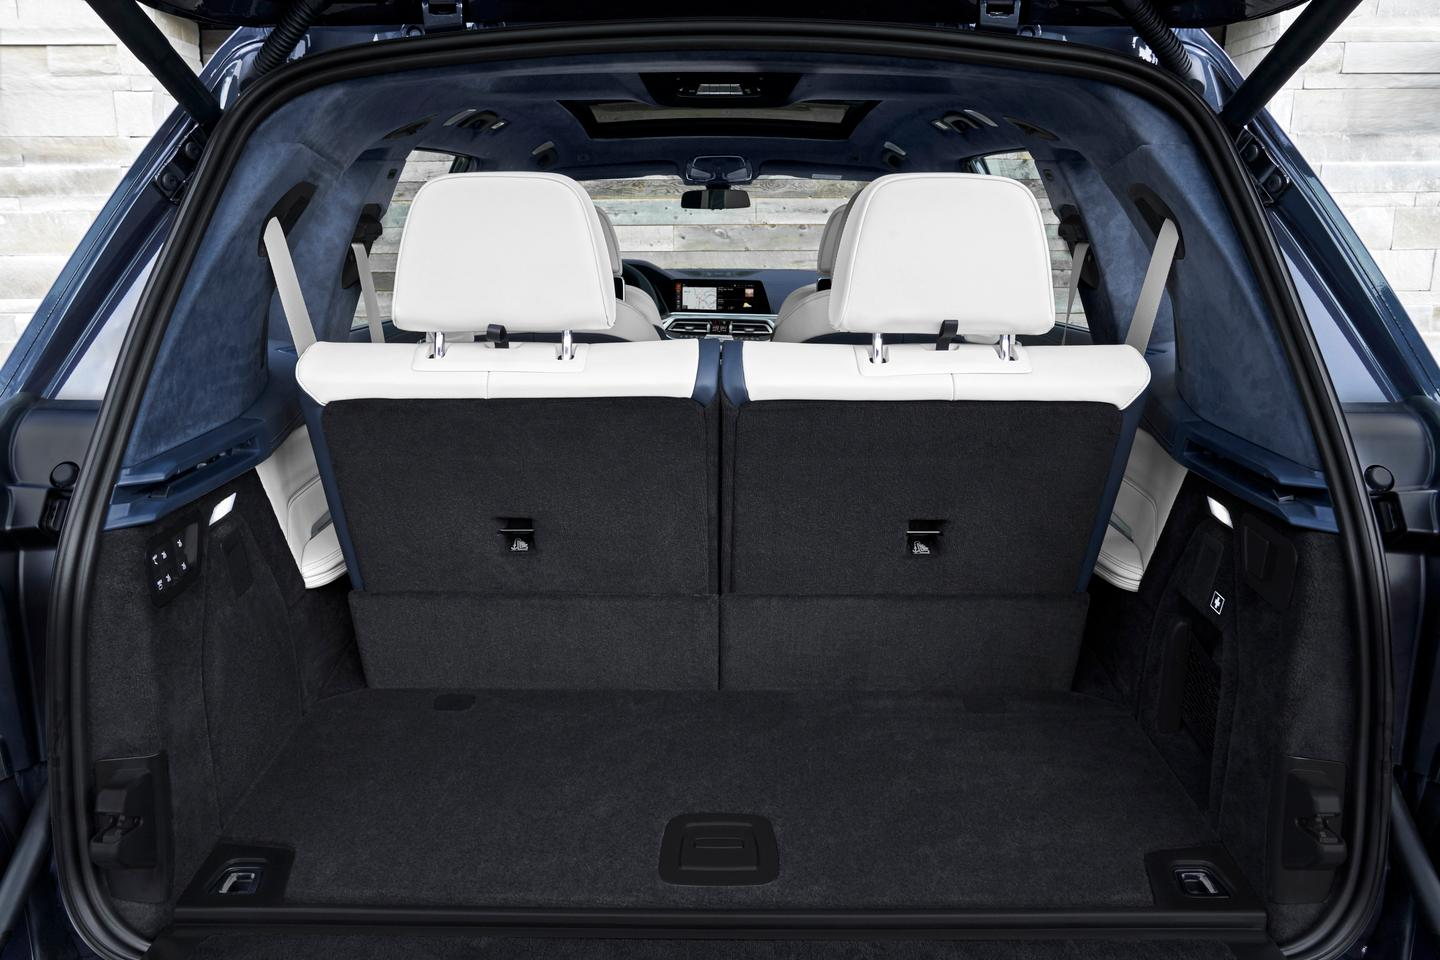 Like most large SUVs, cargo space behind the third row in the BMW X7 is limited, but not ti